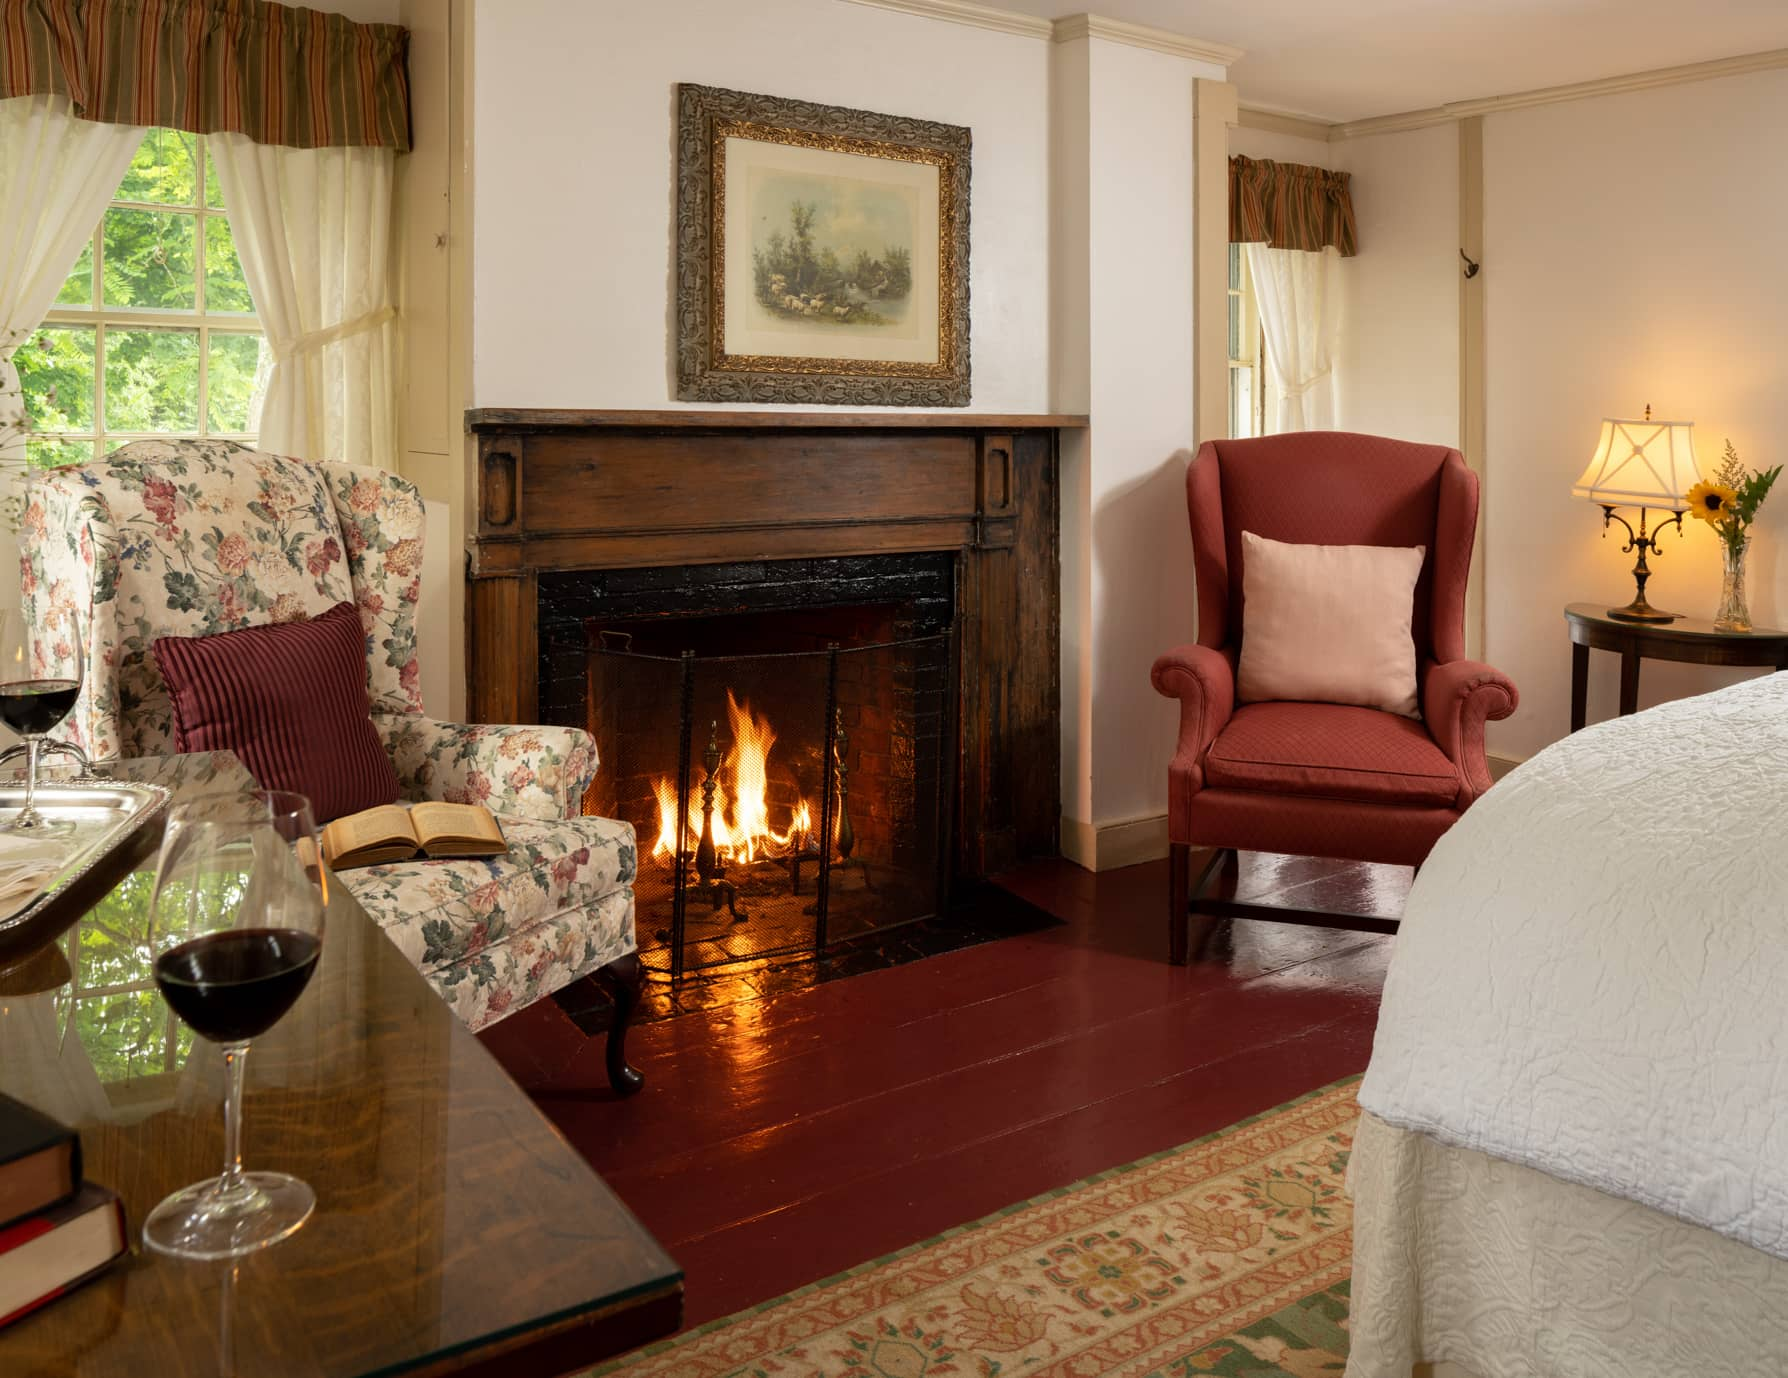 Room 5 with a king bed a seating area and fireplace and hardwood floors with a large area rug